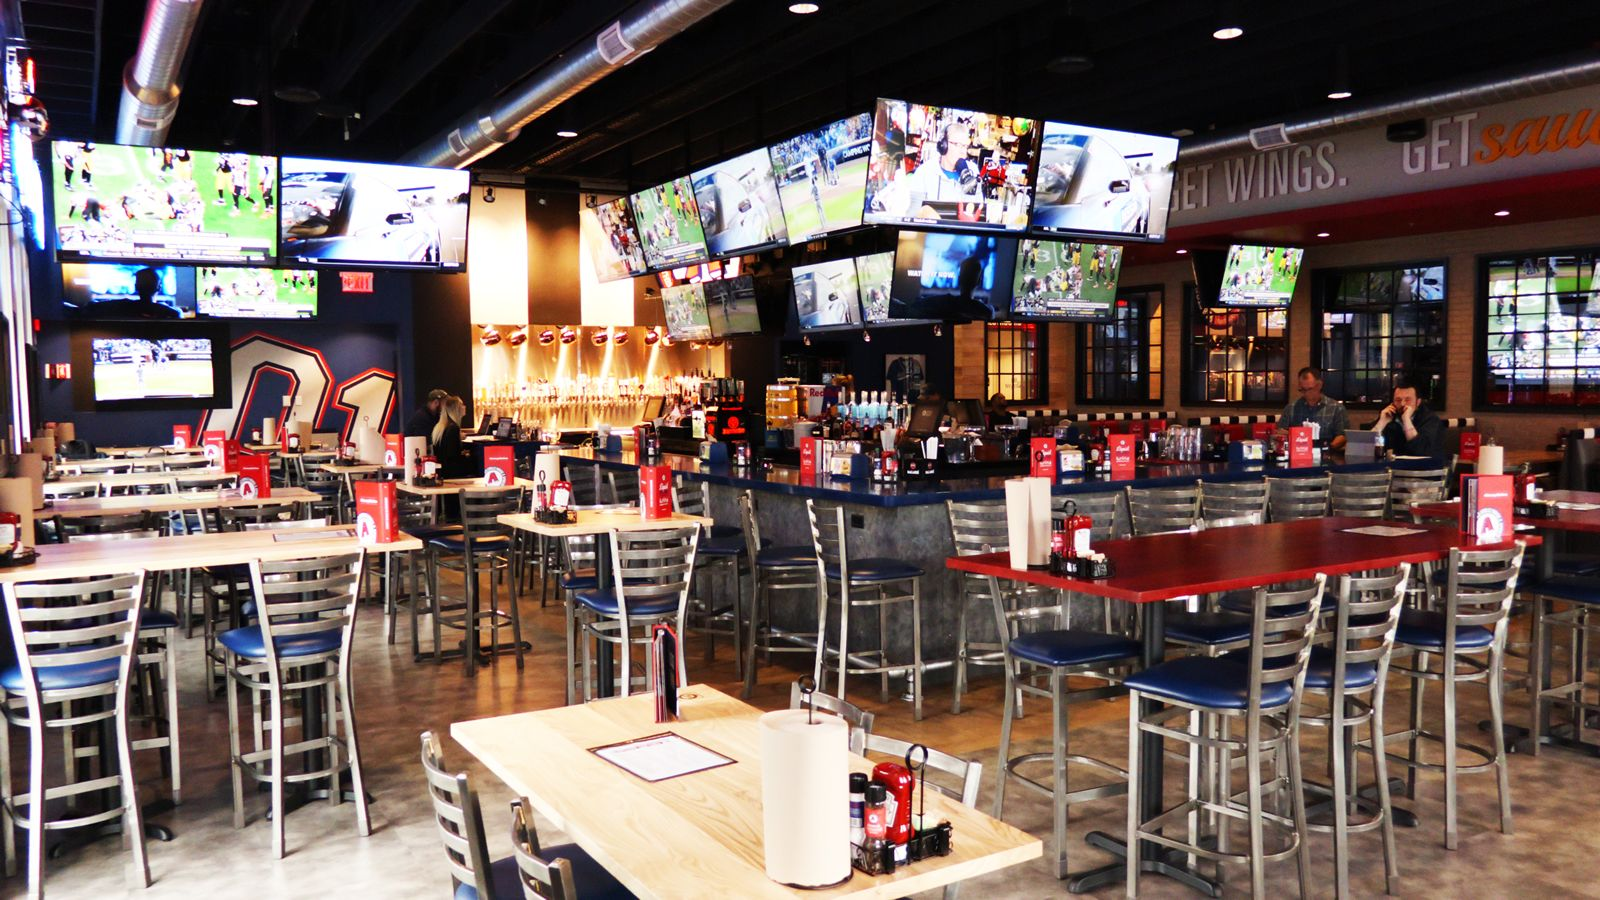 Arooga's Grille House & Sports Bar ouvrira l'emplacement de Warwick, RI le 18 avril